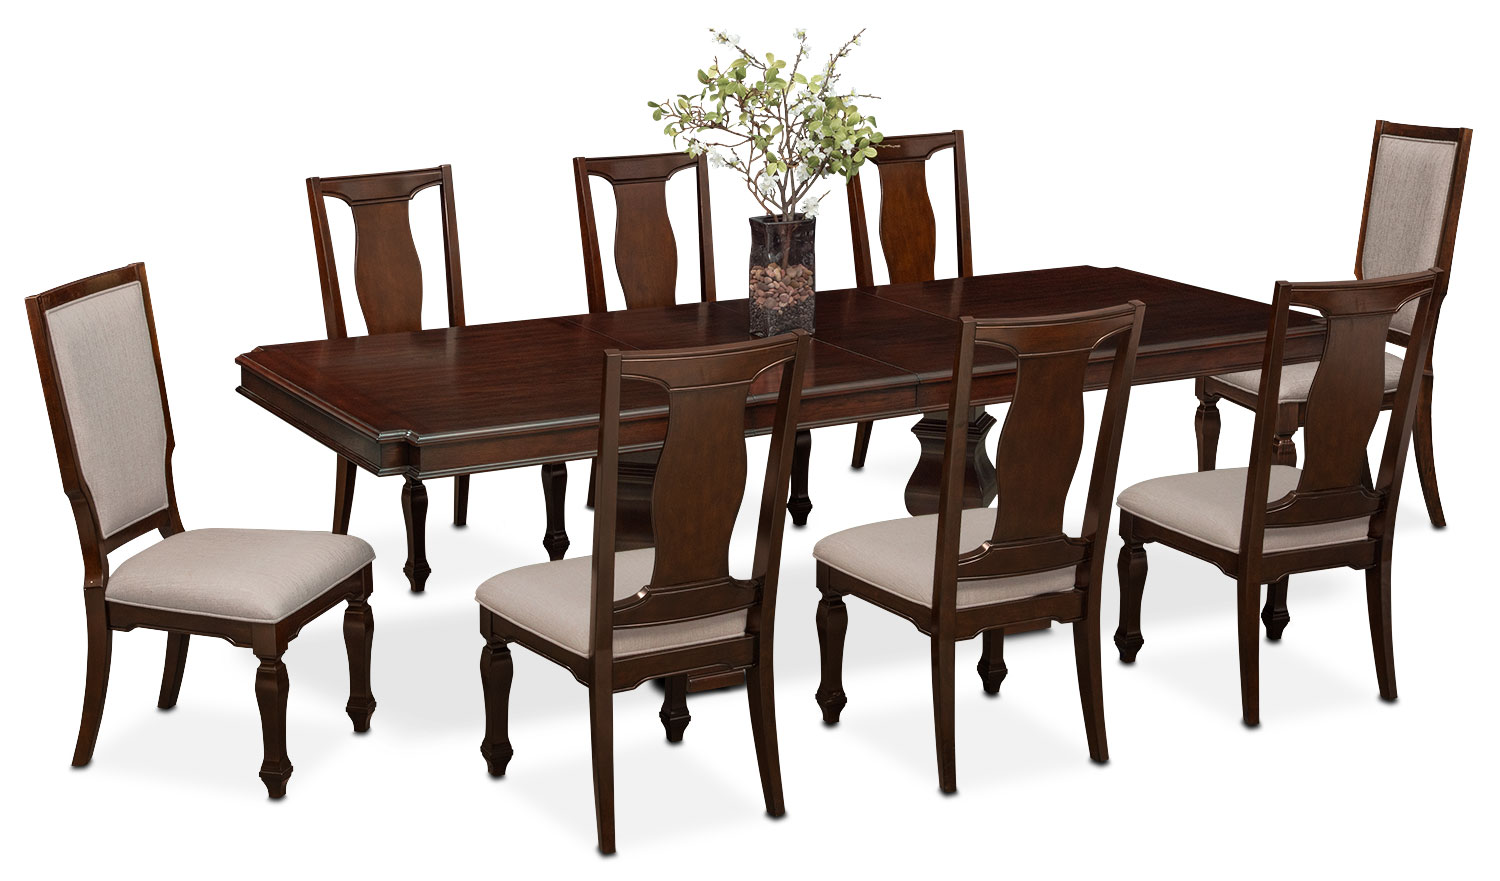 Dining Table And 6 Chairs Vienna Dining Table 6 Side Chairs And 2 Upholstered Side